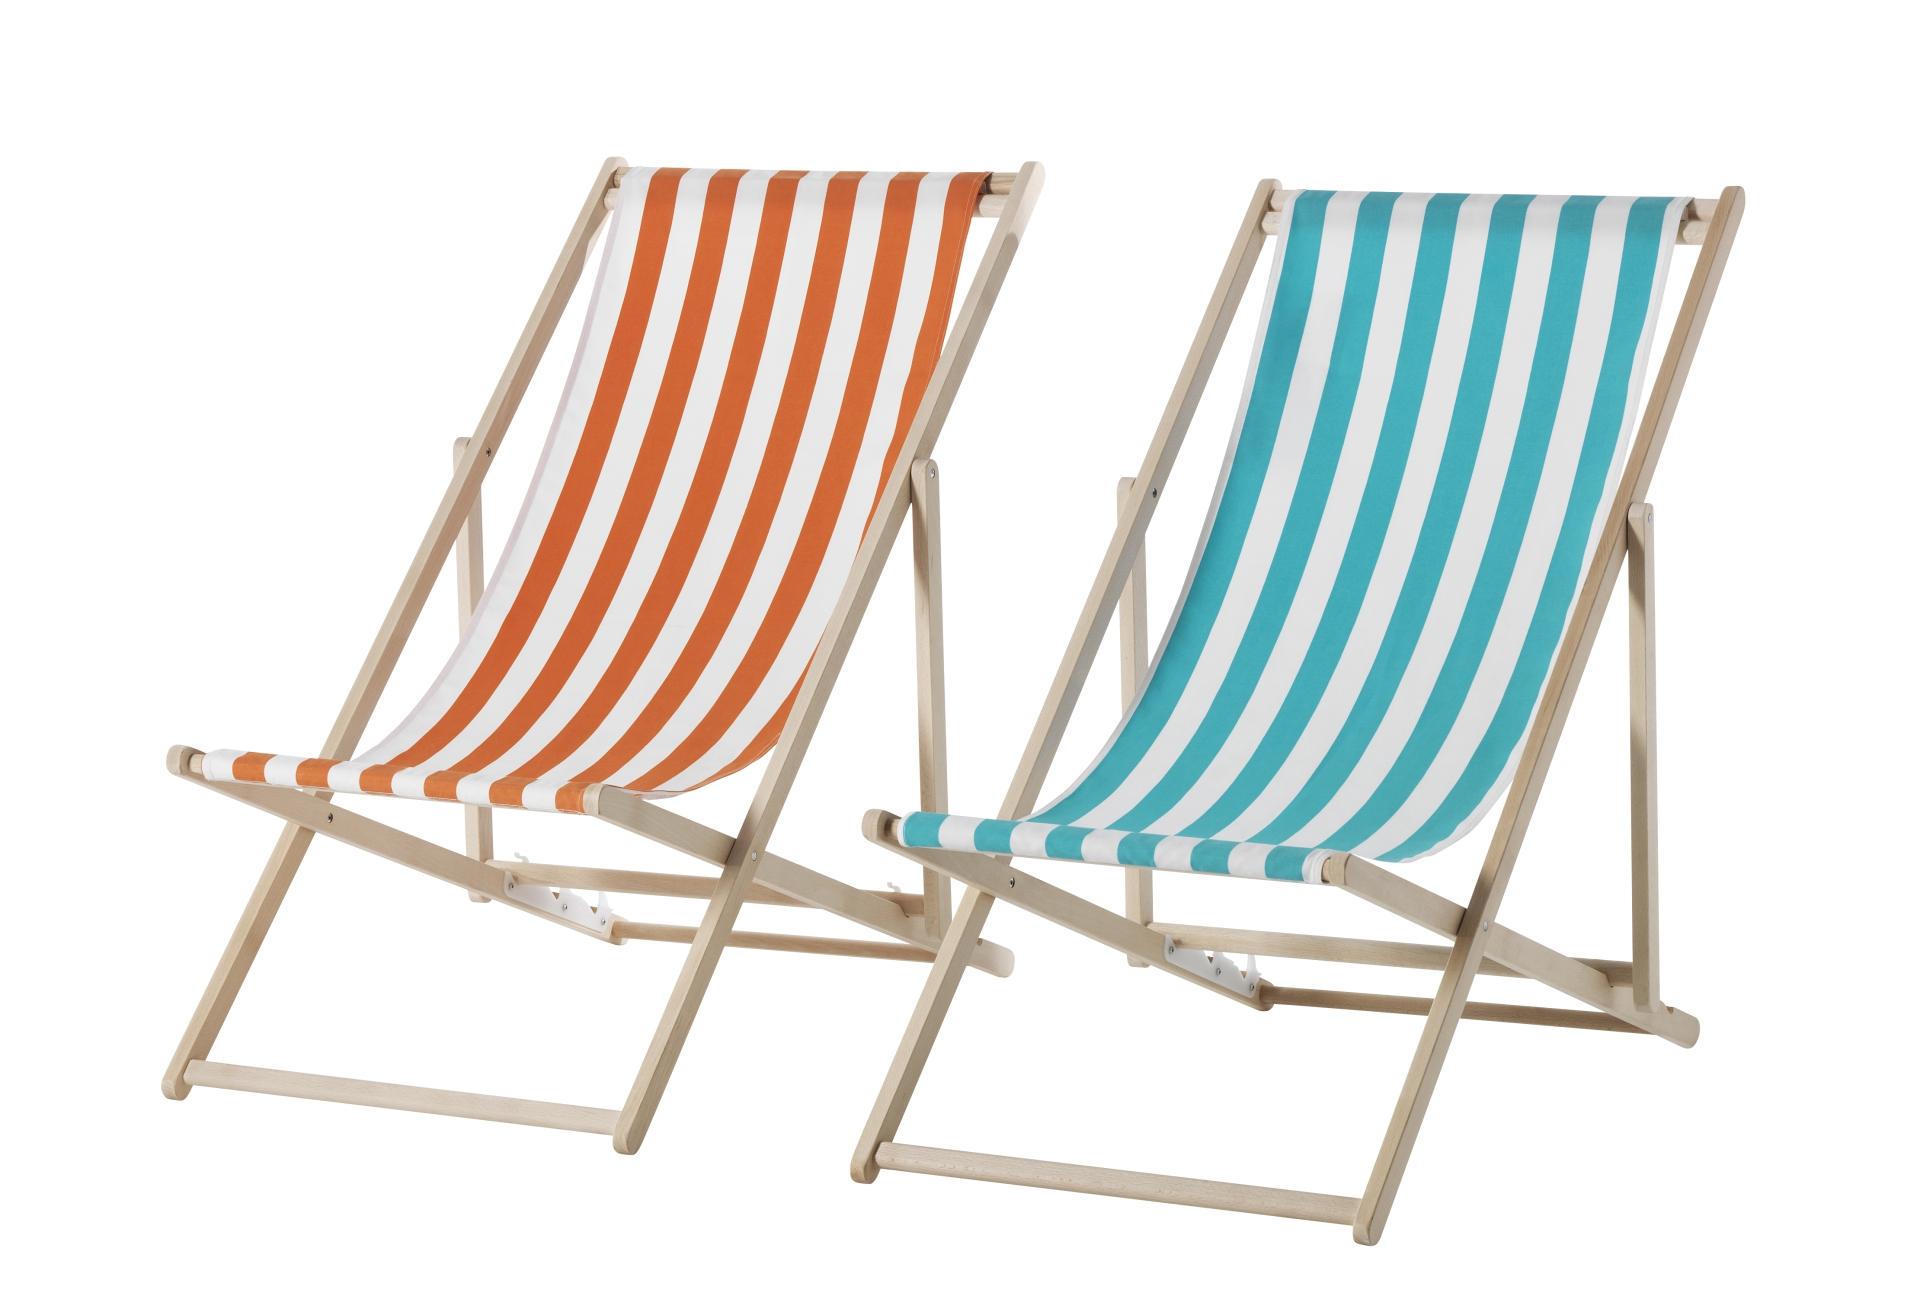 Beach chairs with article number 902.280.08  sc 1 st  Consumer Product Safety Commission & IKEA Recalls Beach Chairs Due to Fall and Fingertip Amputation ...